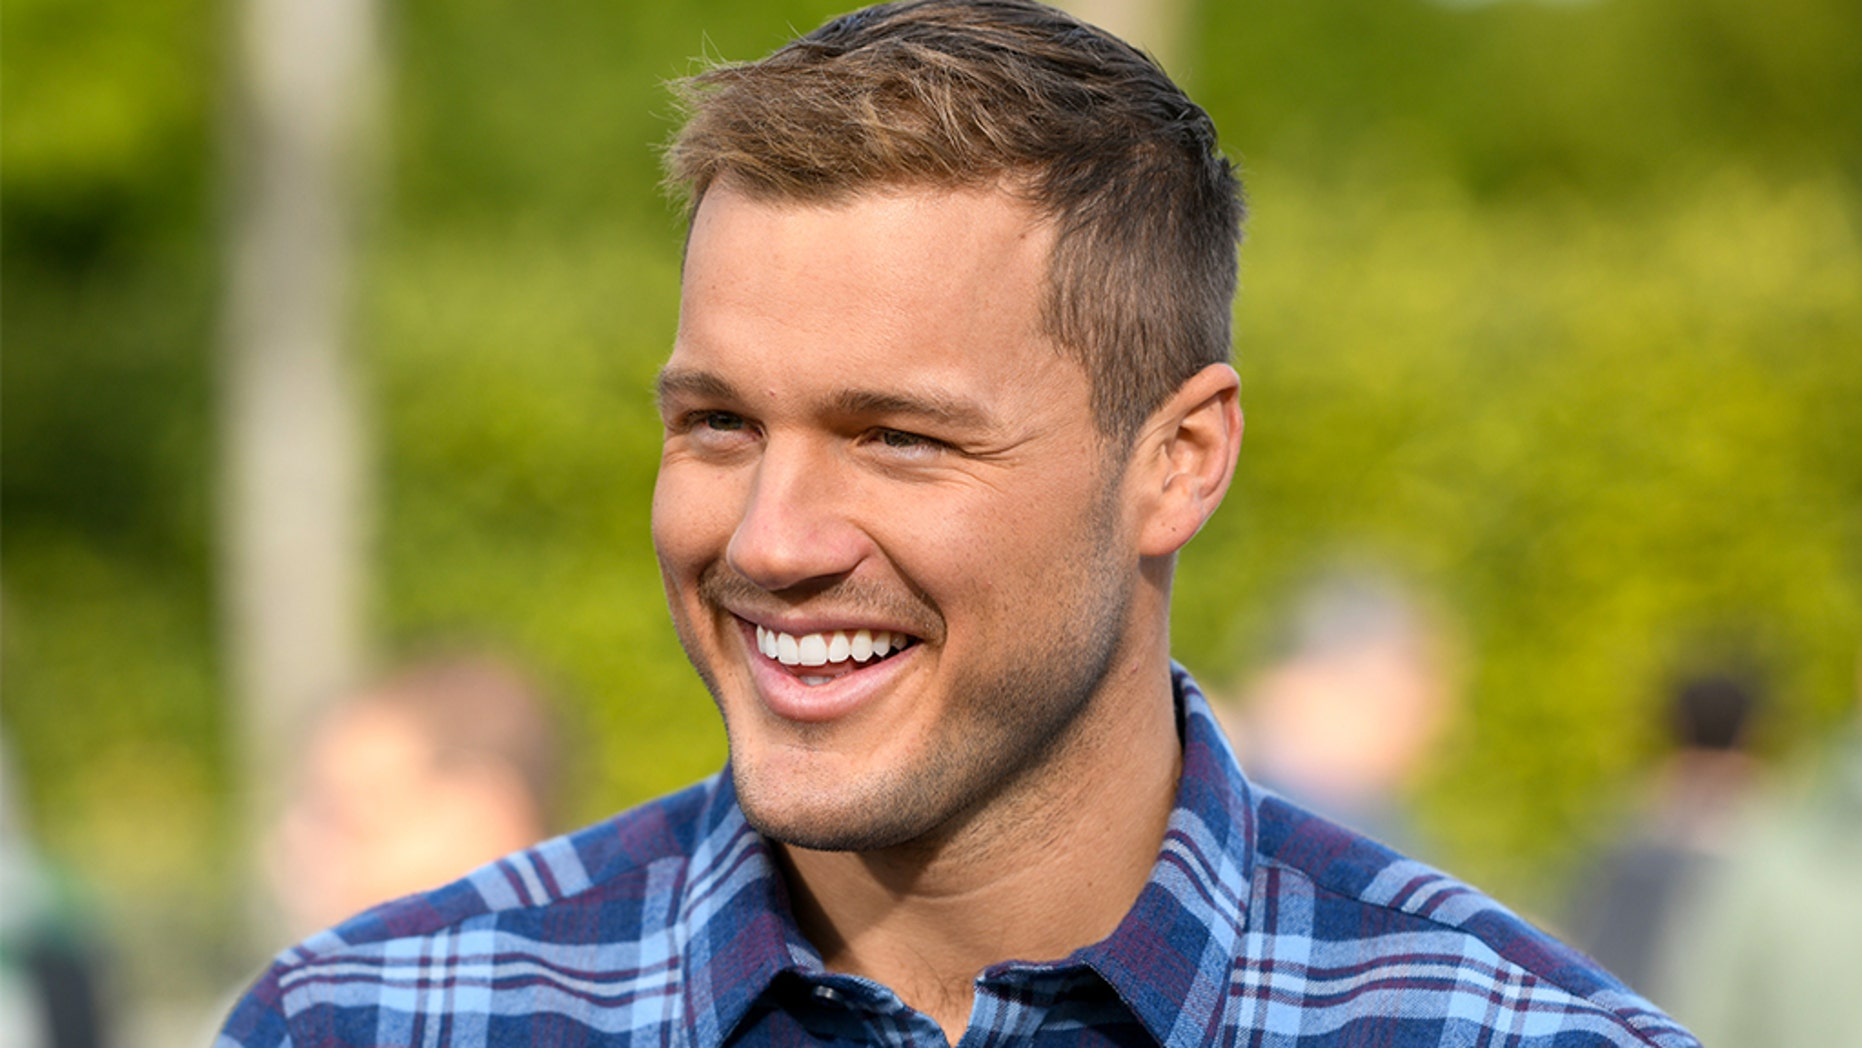 """Colton Underwood, the current star of ABC's """"The Bachelor,"""" claims he was groped at a recent charity event. (Photo by Noel Vasquez/Getty Images"""